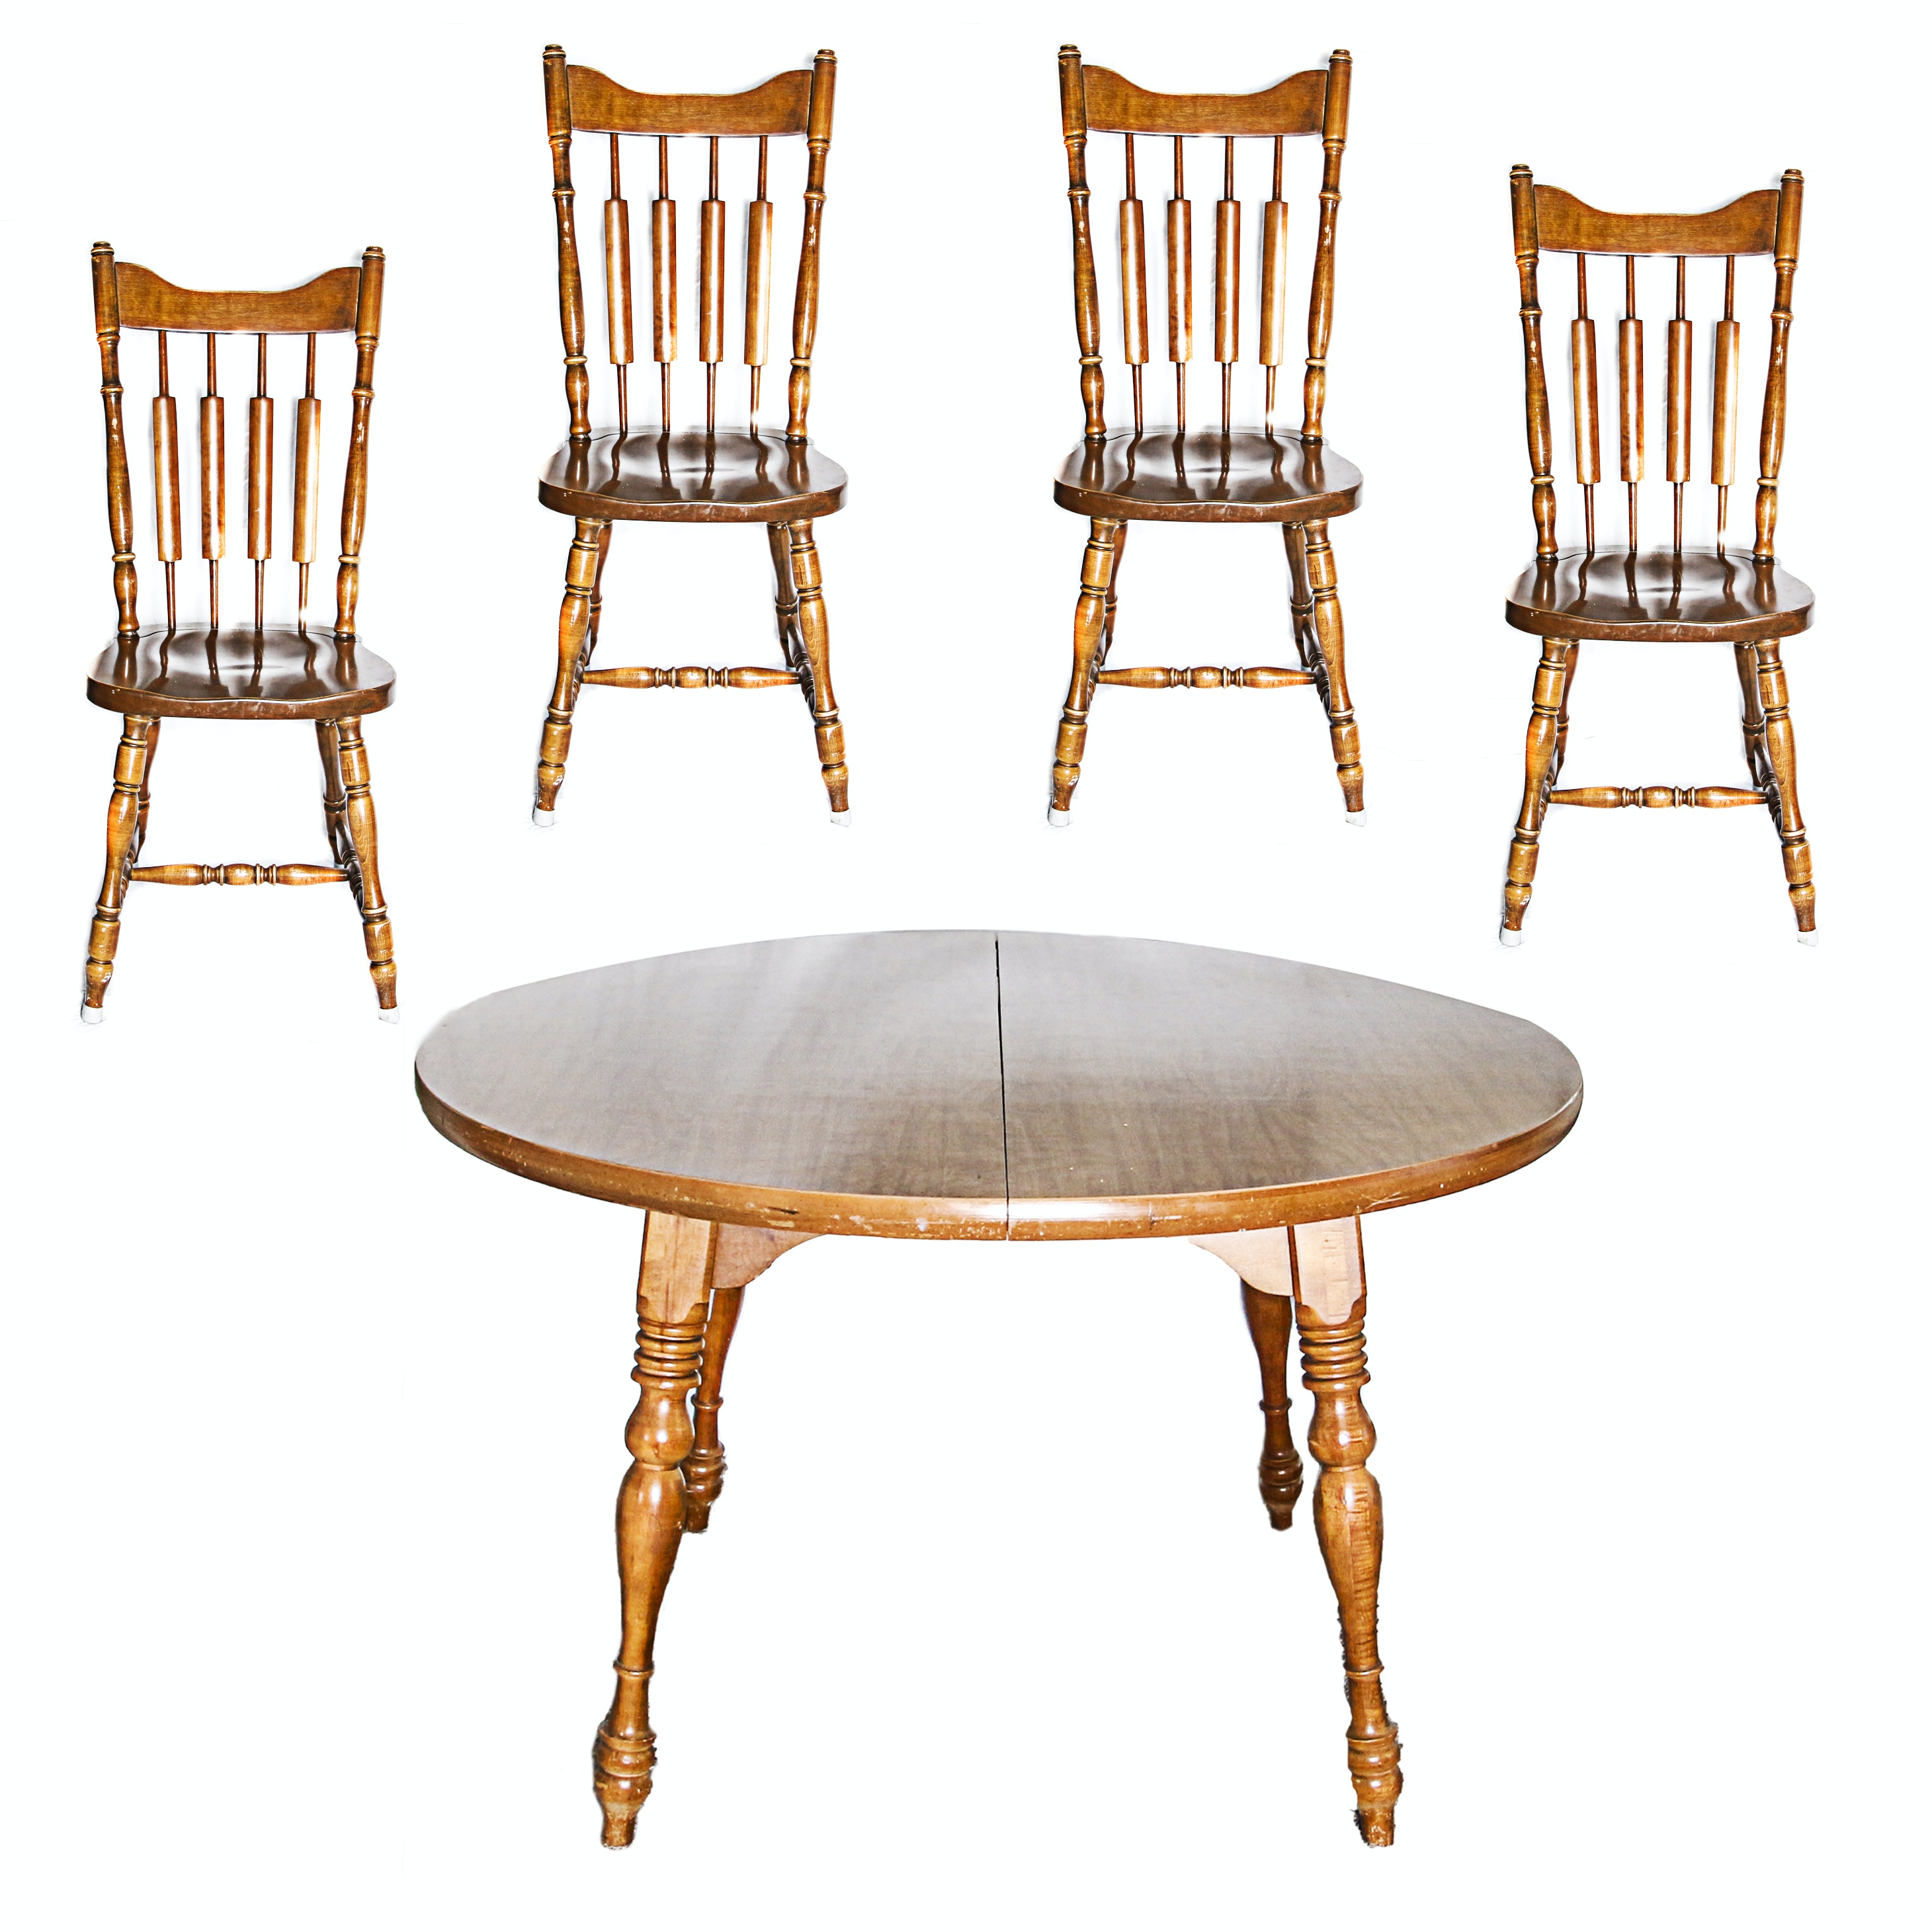 Vintage Colonial Style Dining Table with Side Chairs by Richardson Brothers